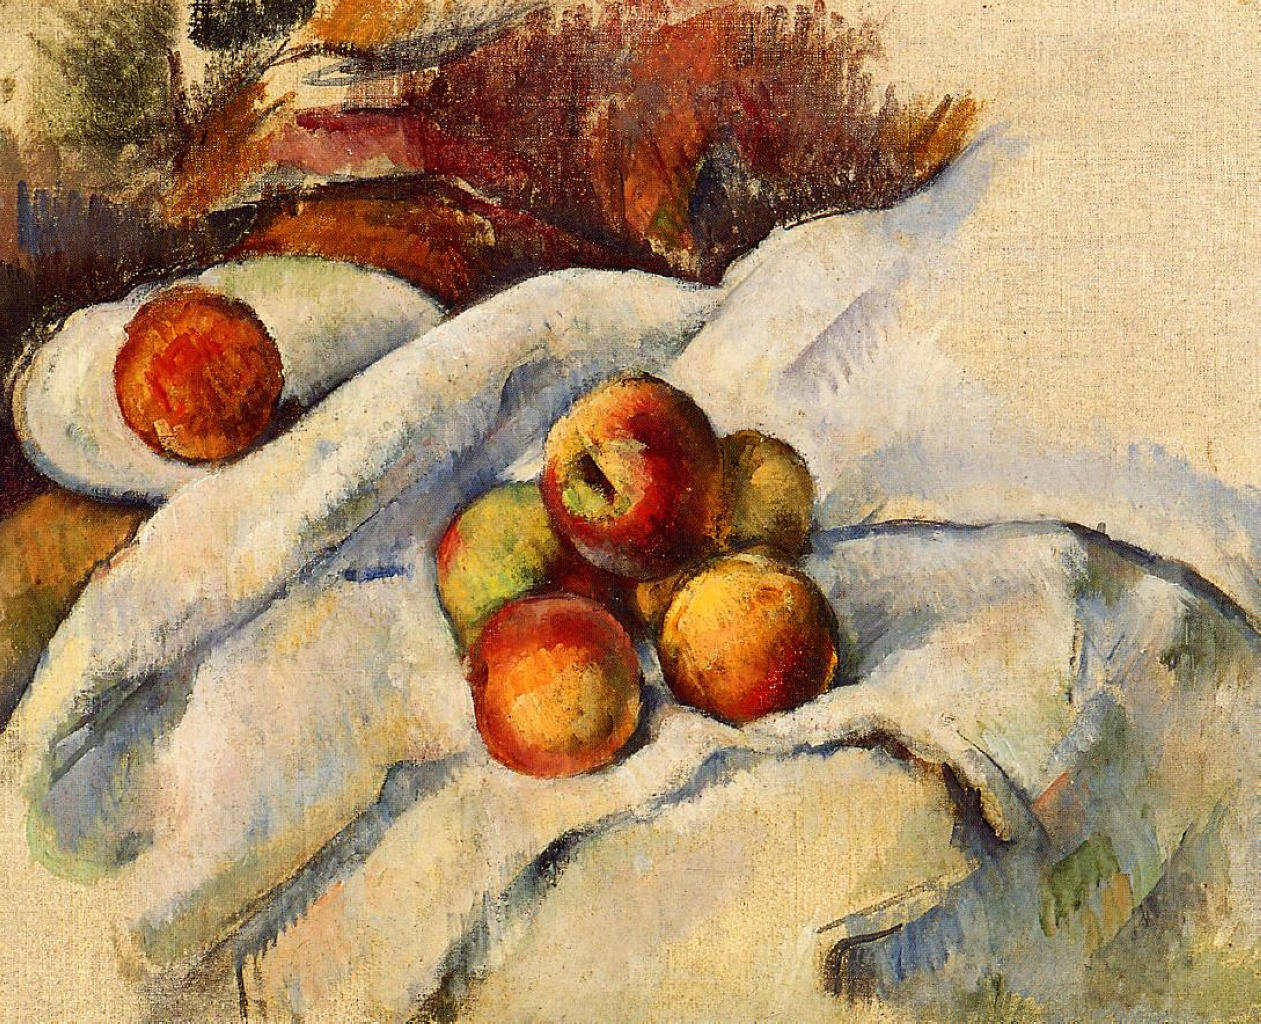 Apples on a sheet 1900